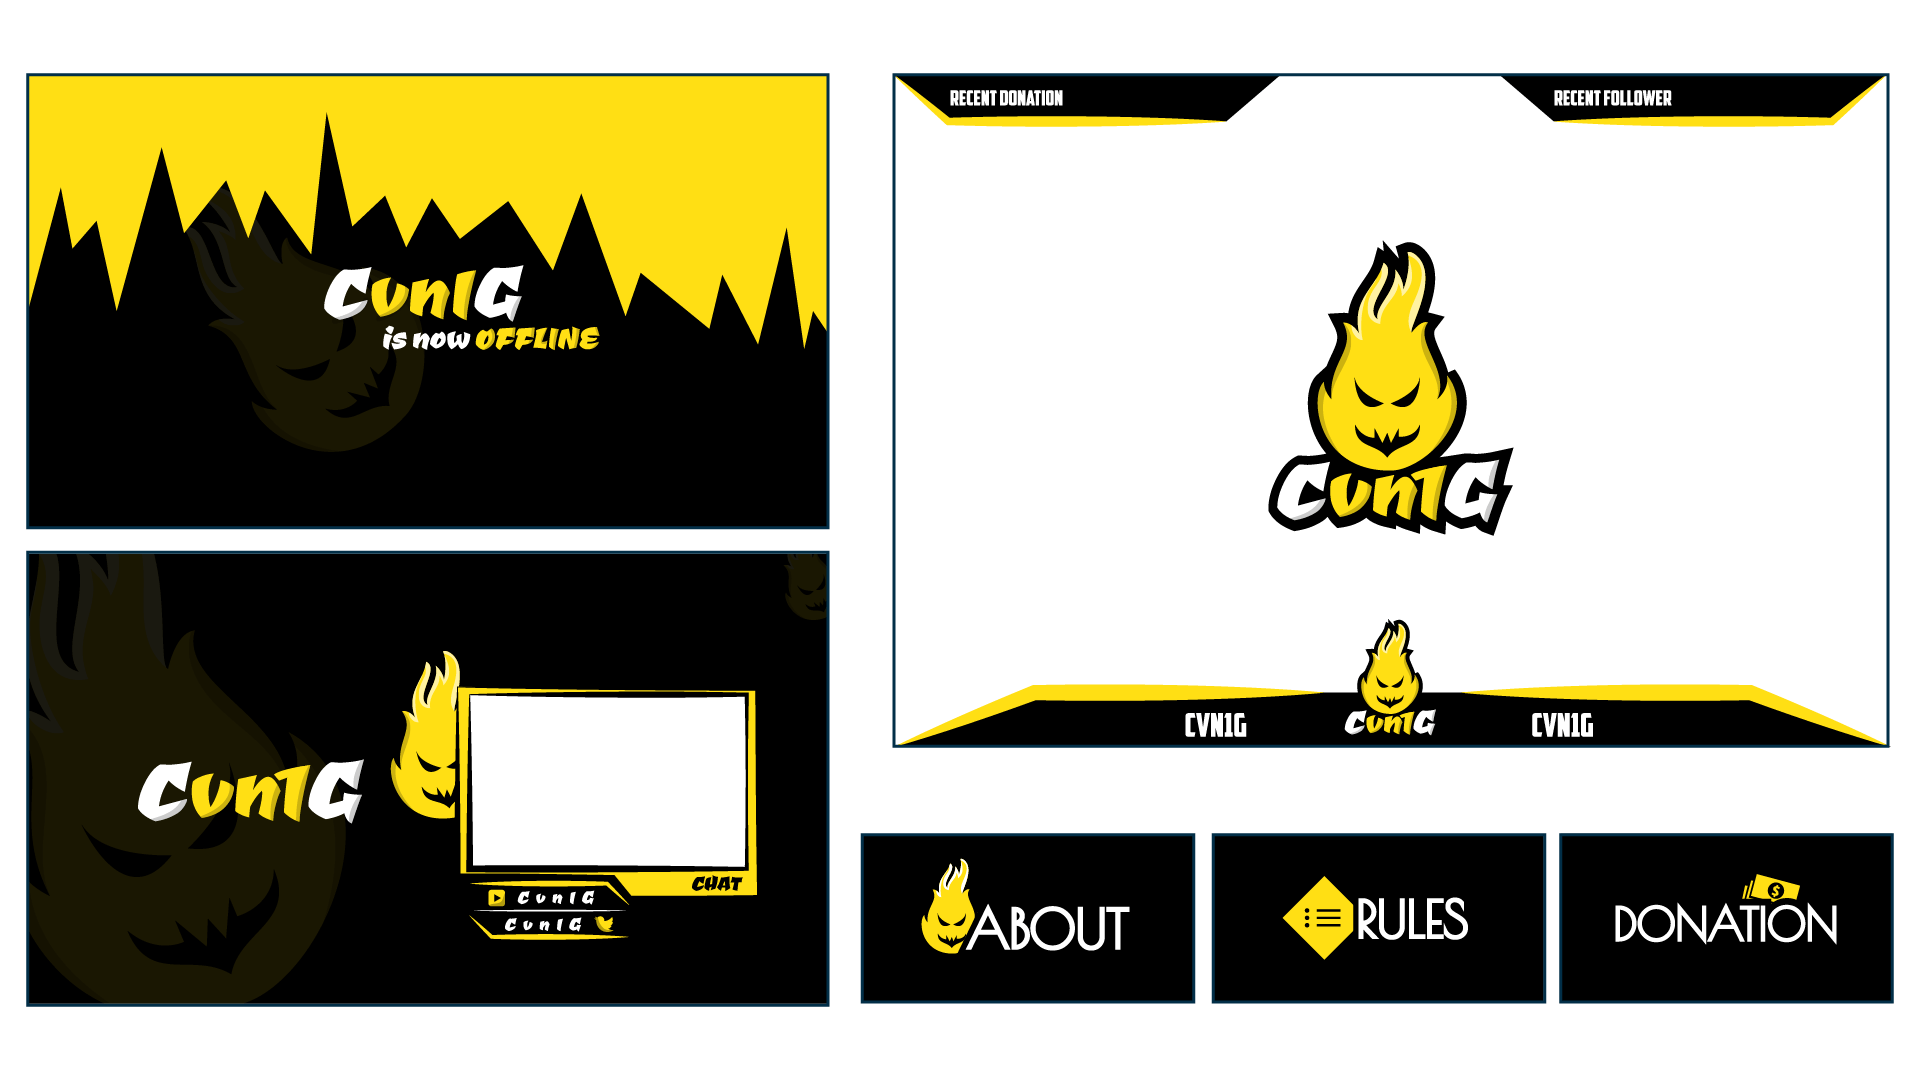 Cvn1G Twitch Channel Design